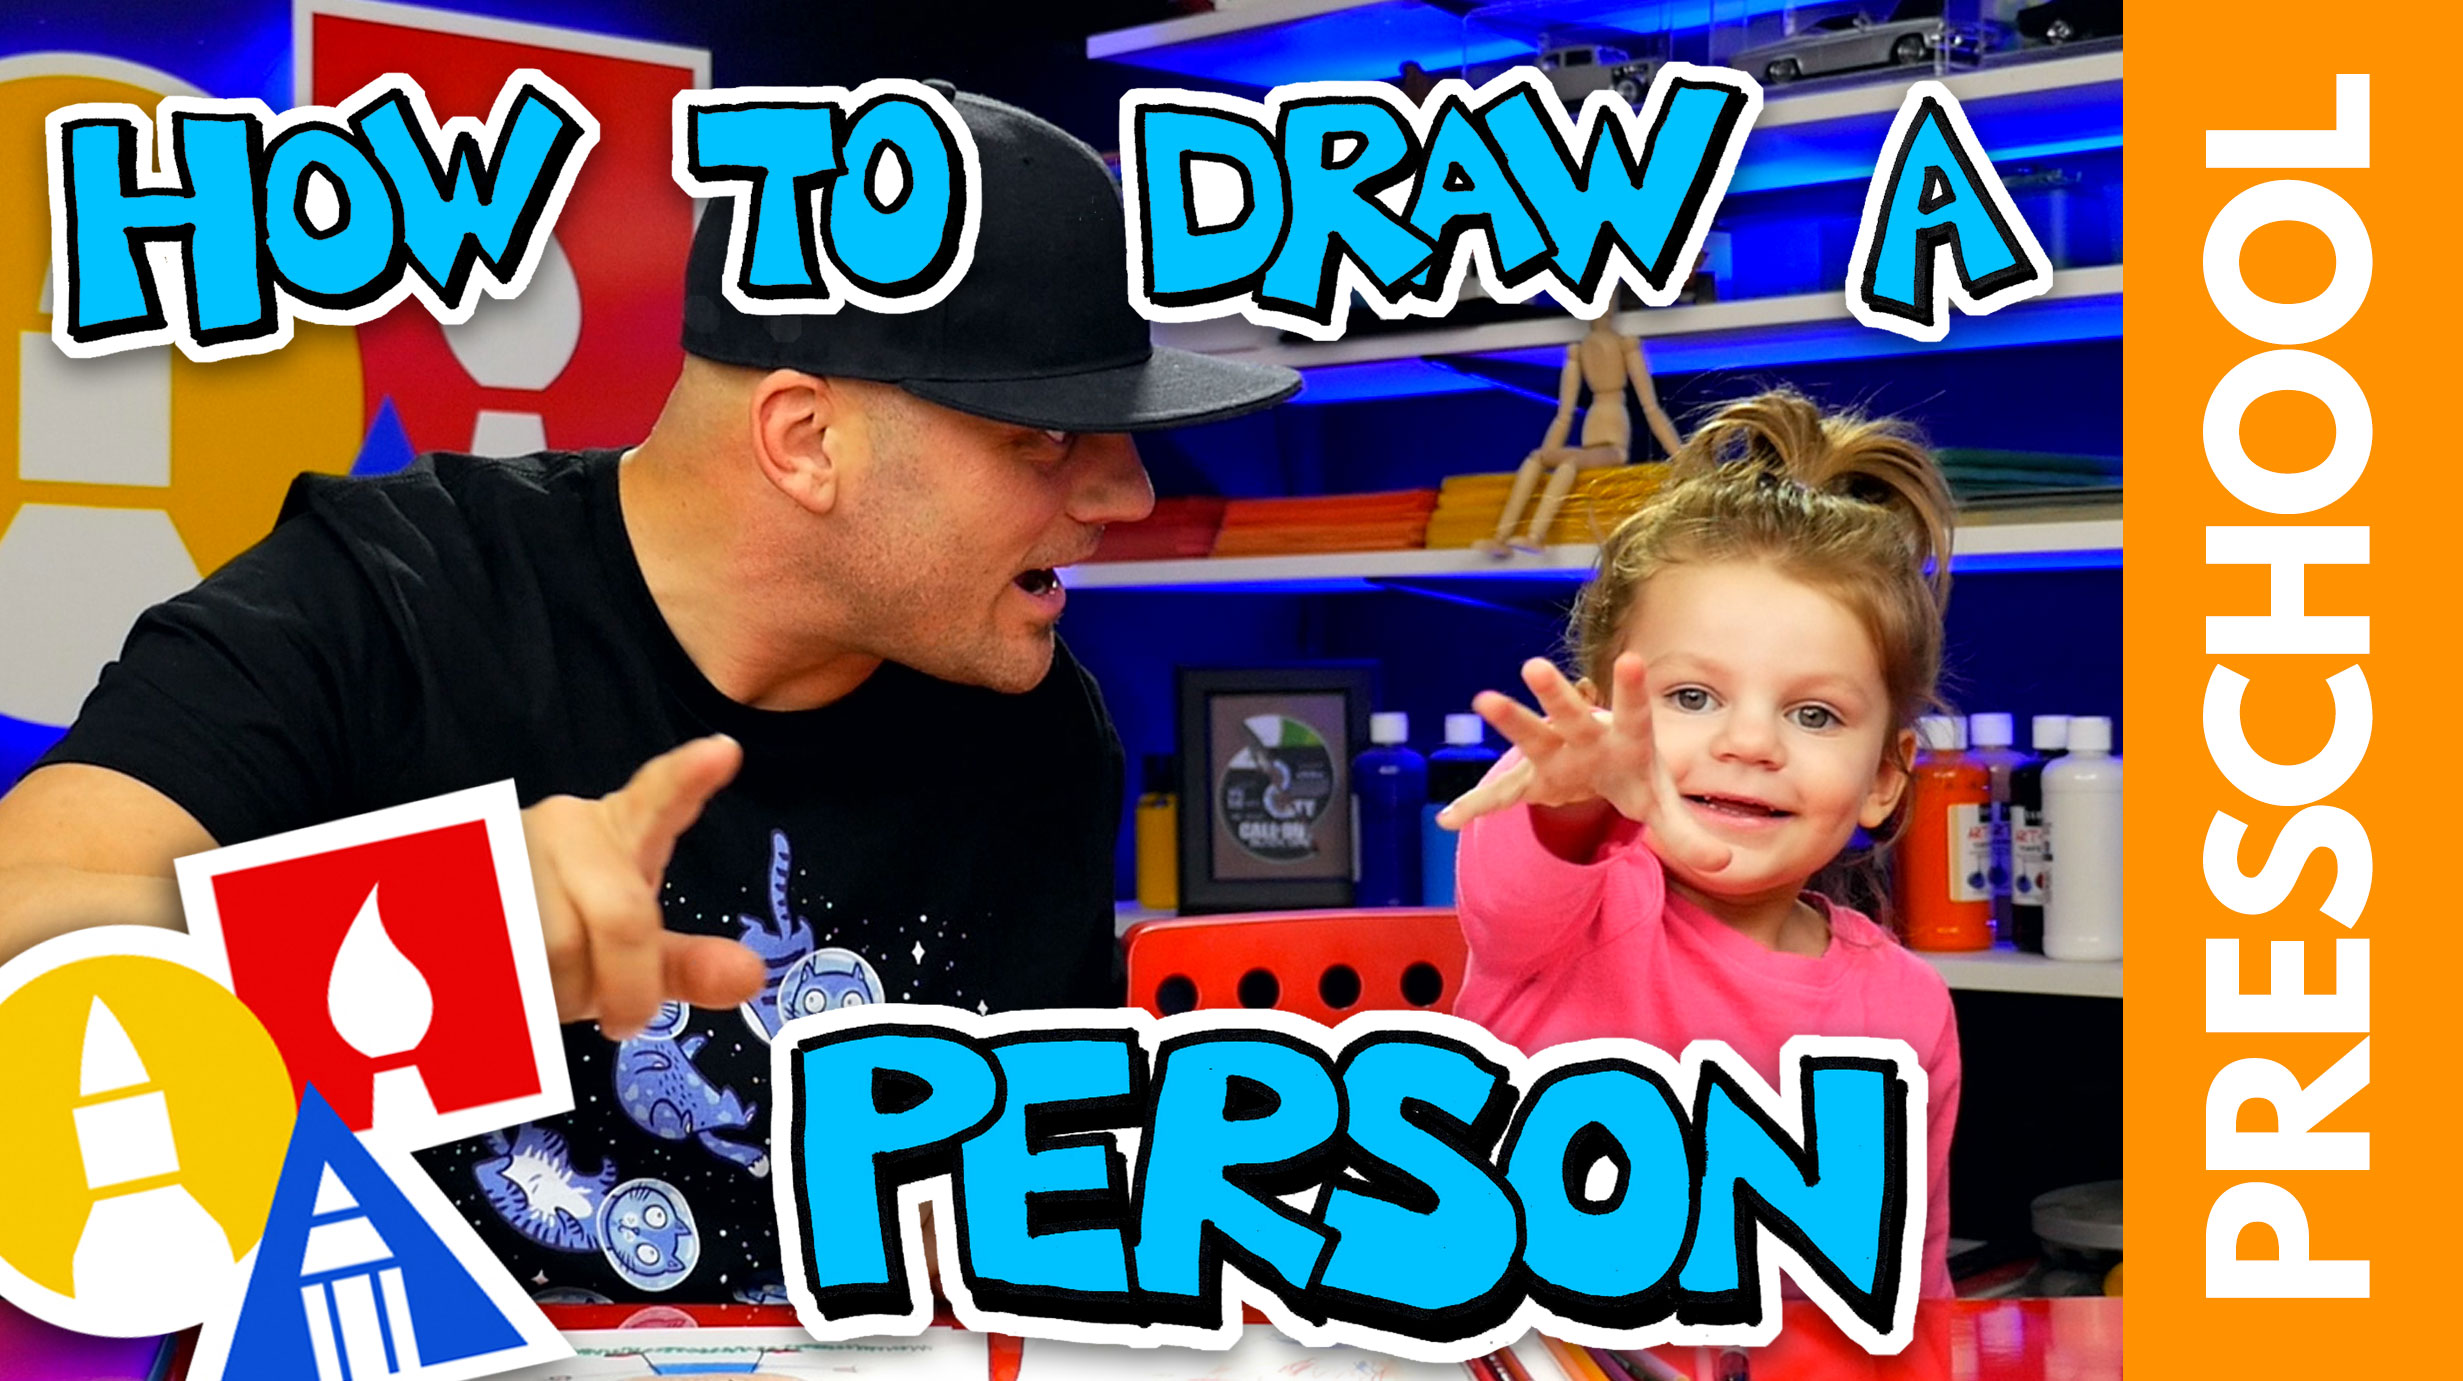 Drawing A Person With My 2-Year-Old (Preschool) - Art For ...